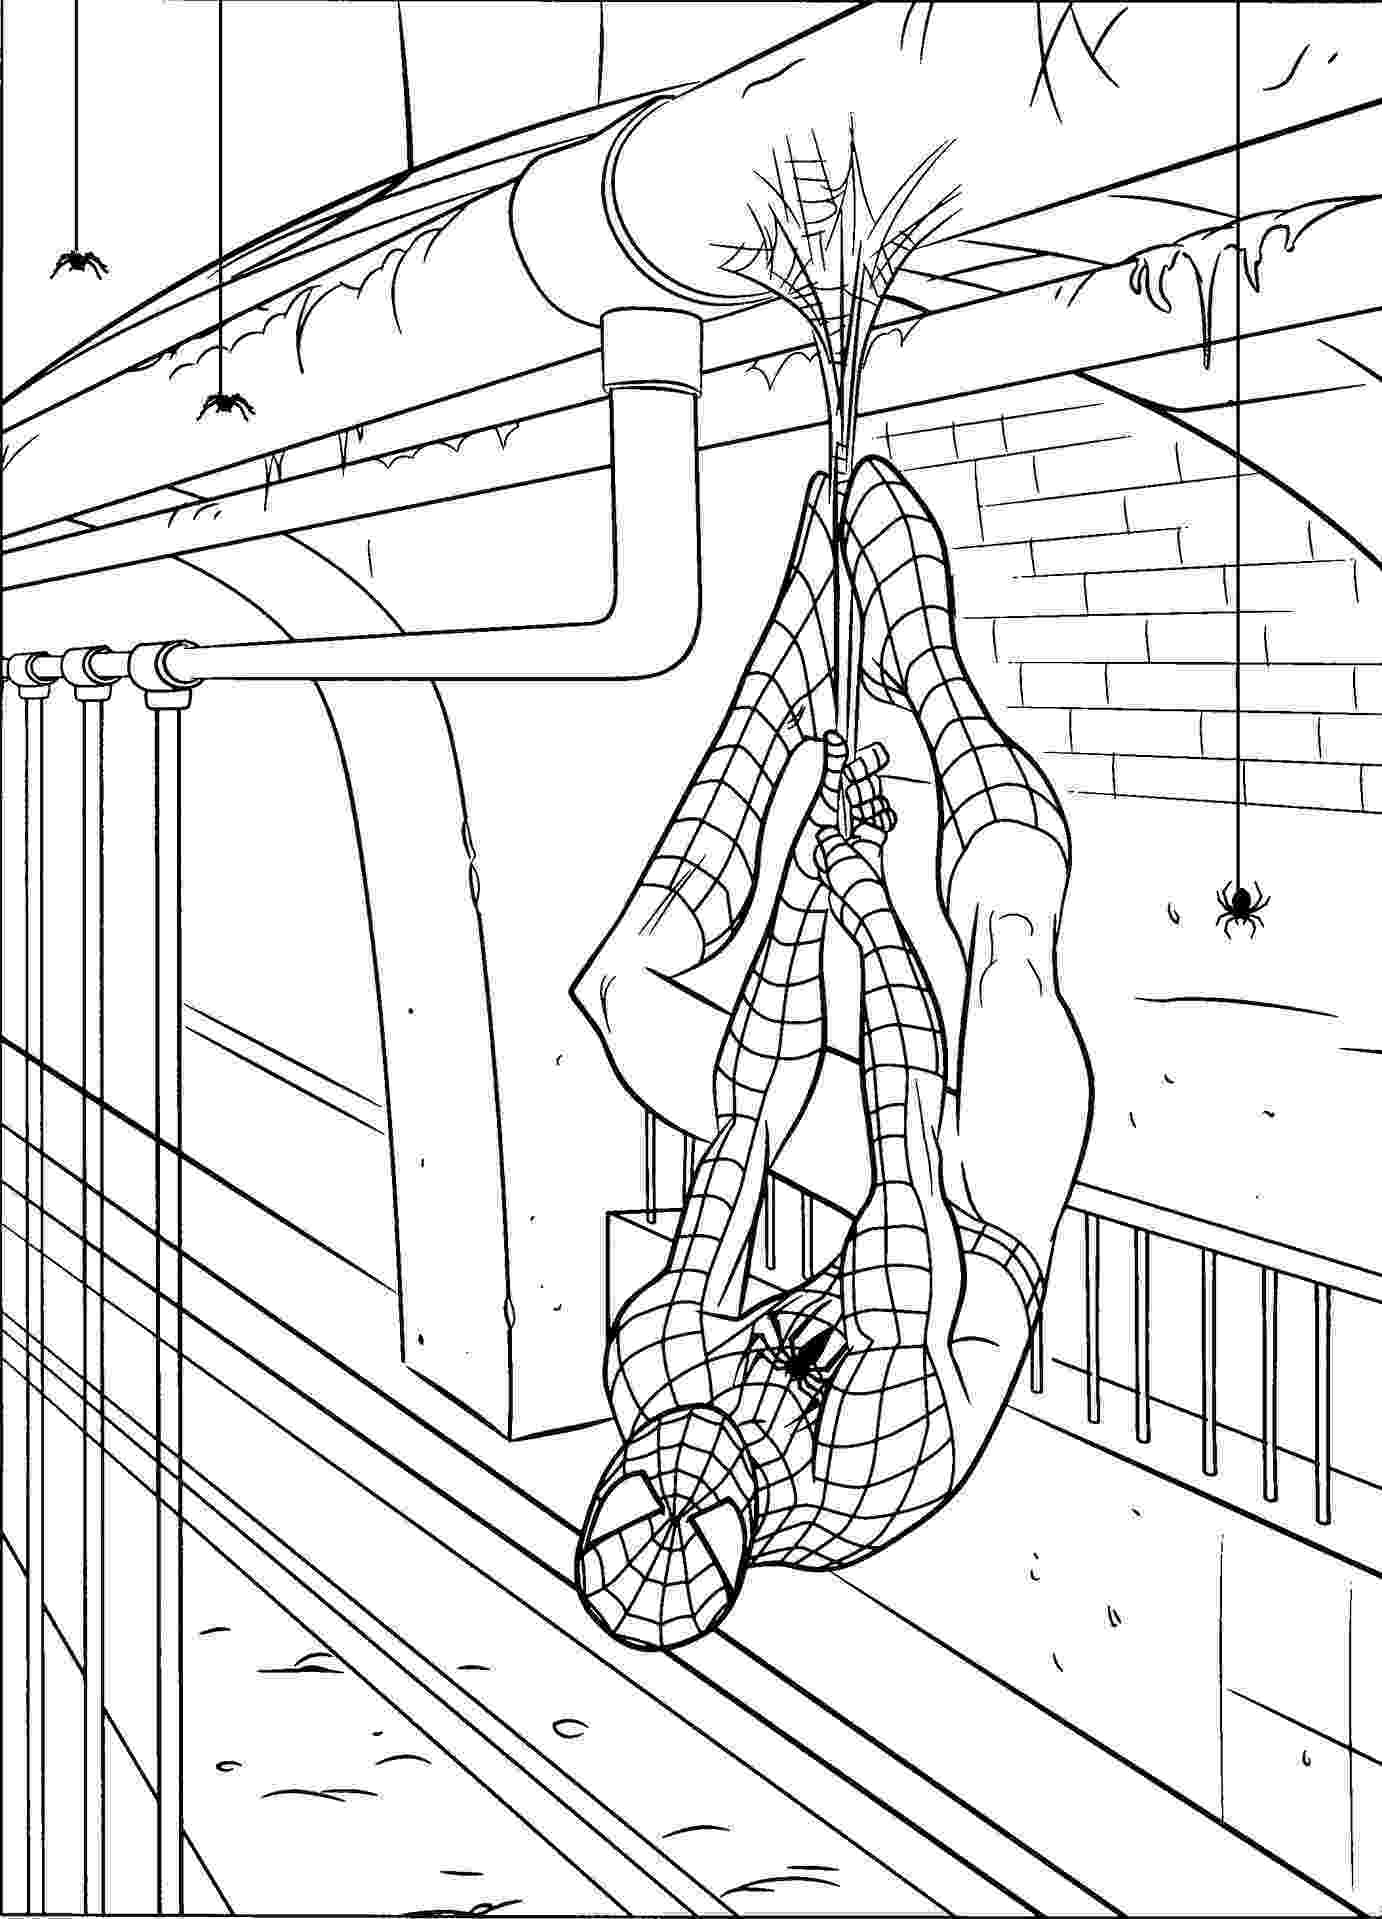 spiderman coloring pages printables spiderman to print for free spiderman kids coloring pages spiderman printables coloring pages